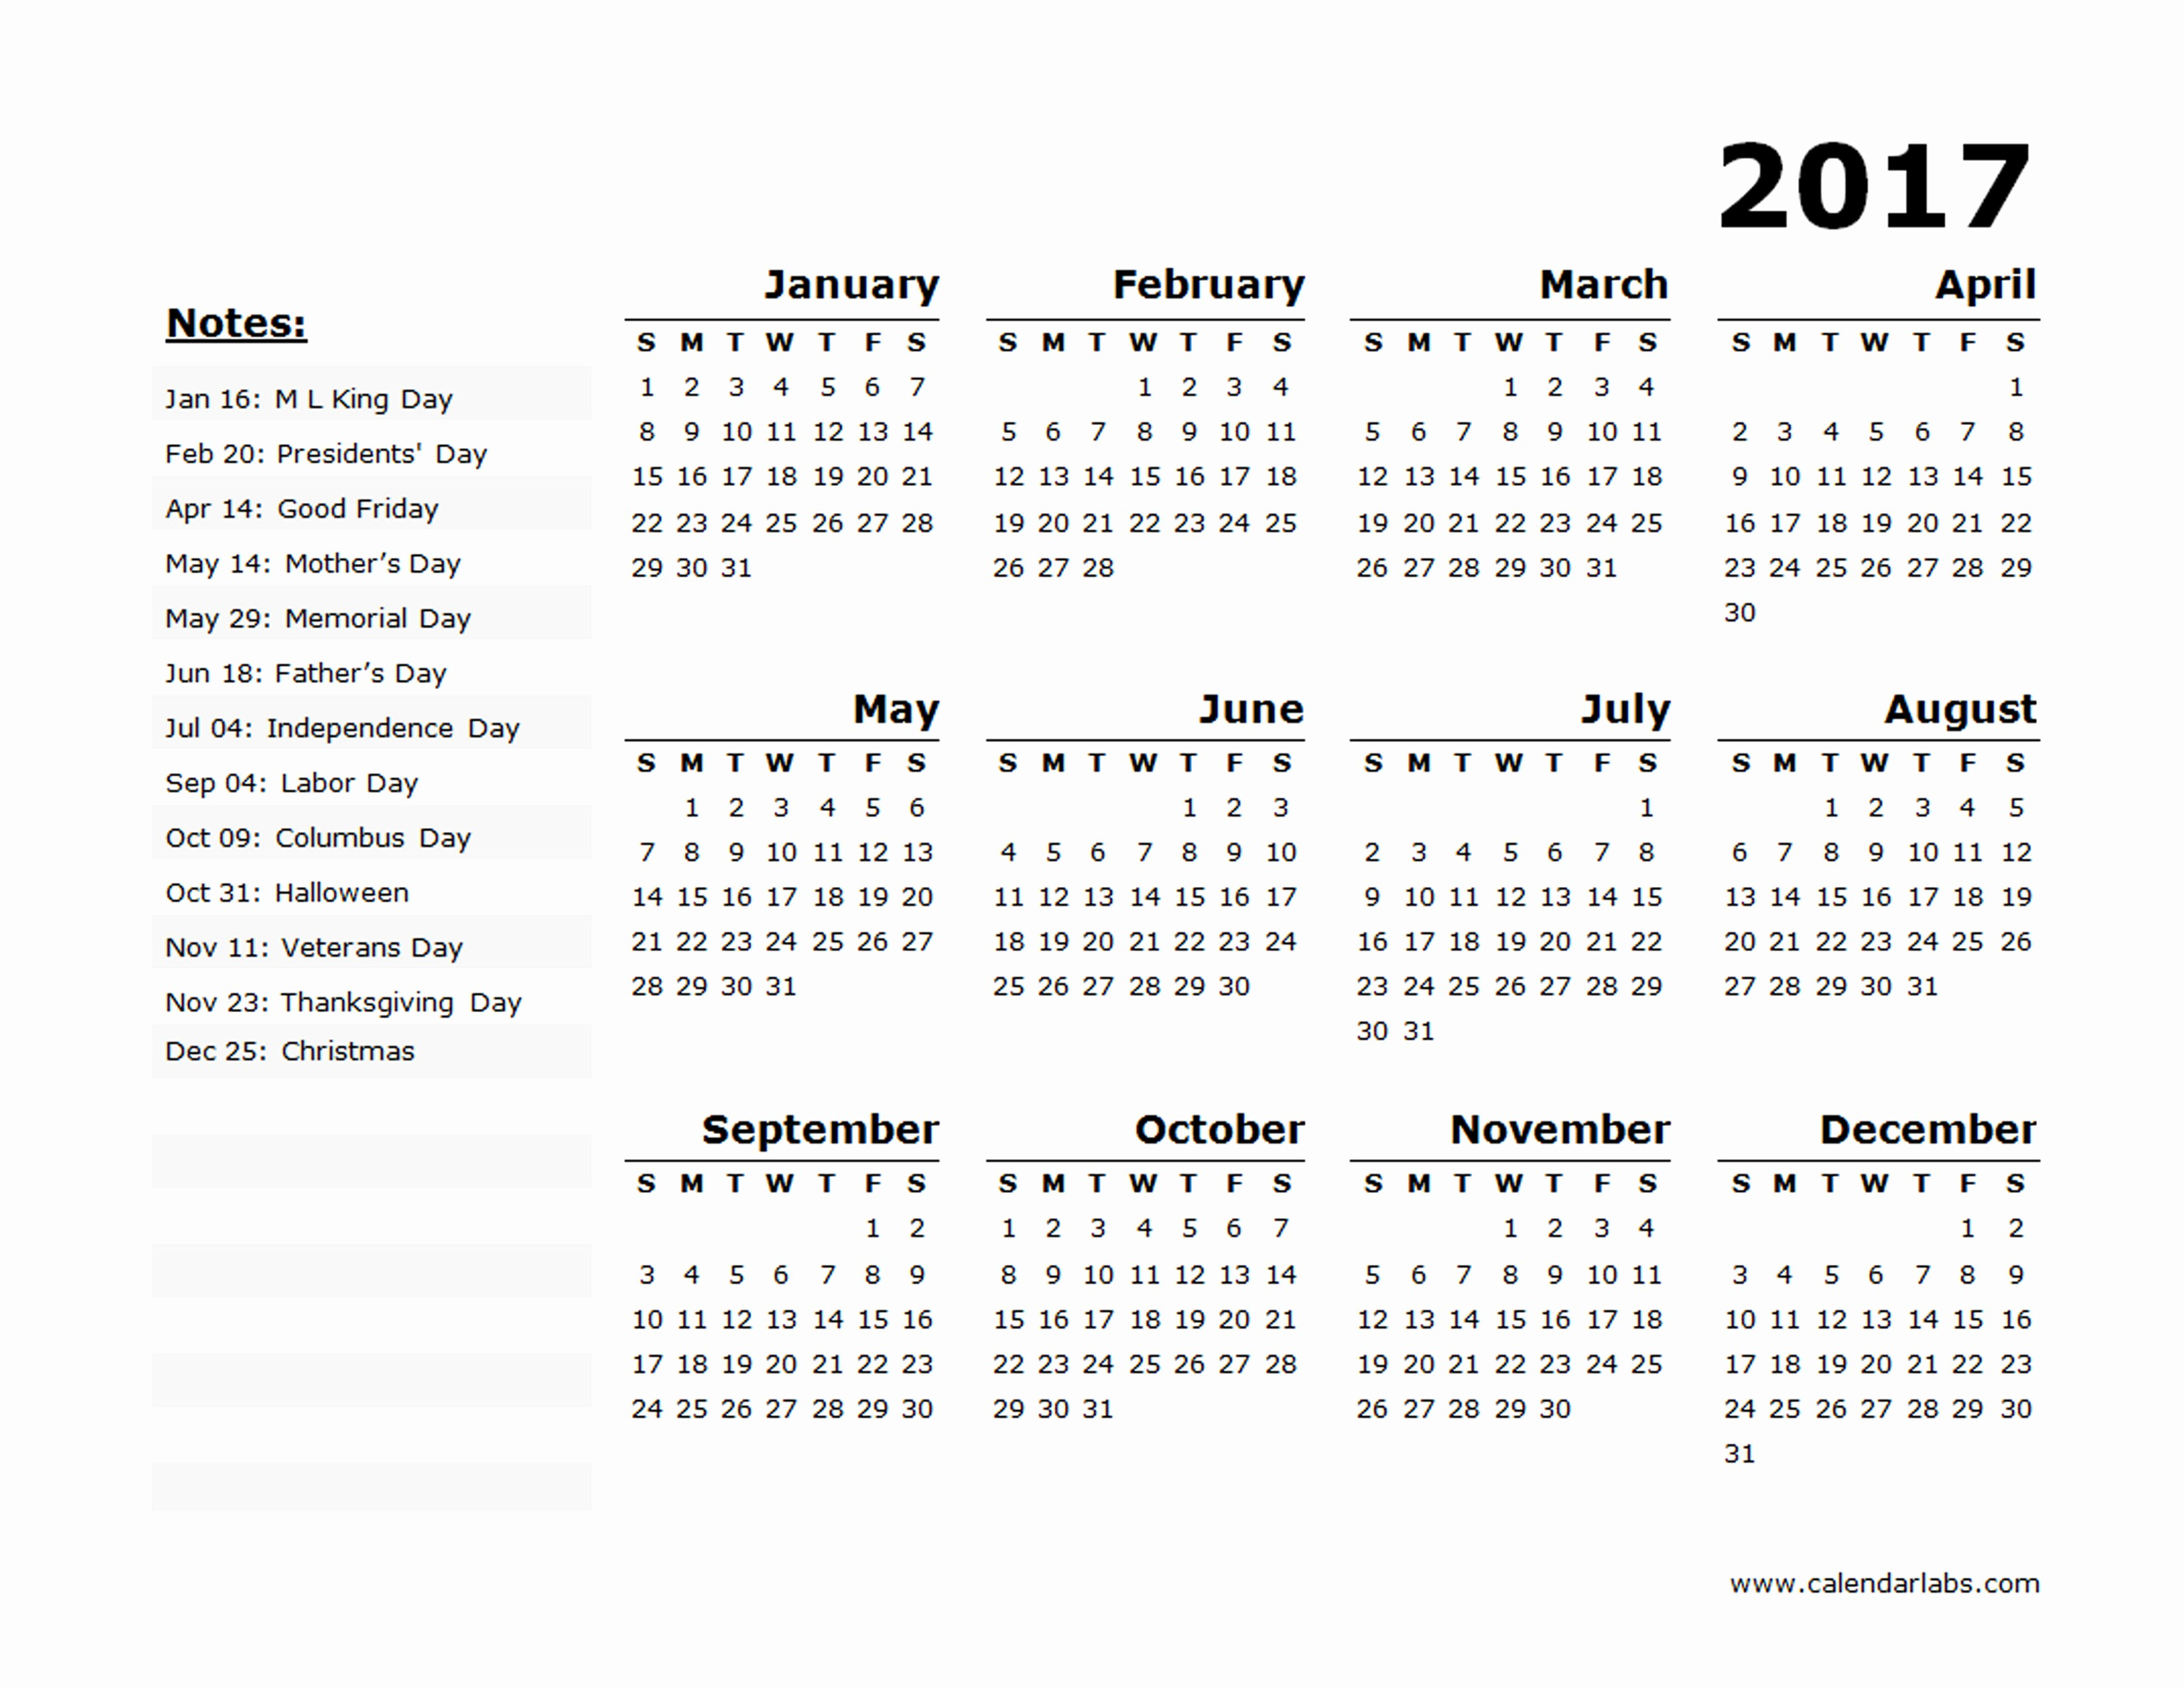 Calendar 2017 Template with Holidays Best Of 2017 Year Calendar Template Us Holidays 02 Free